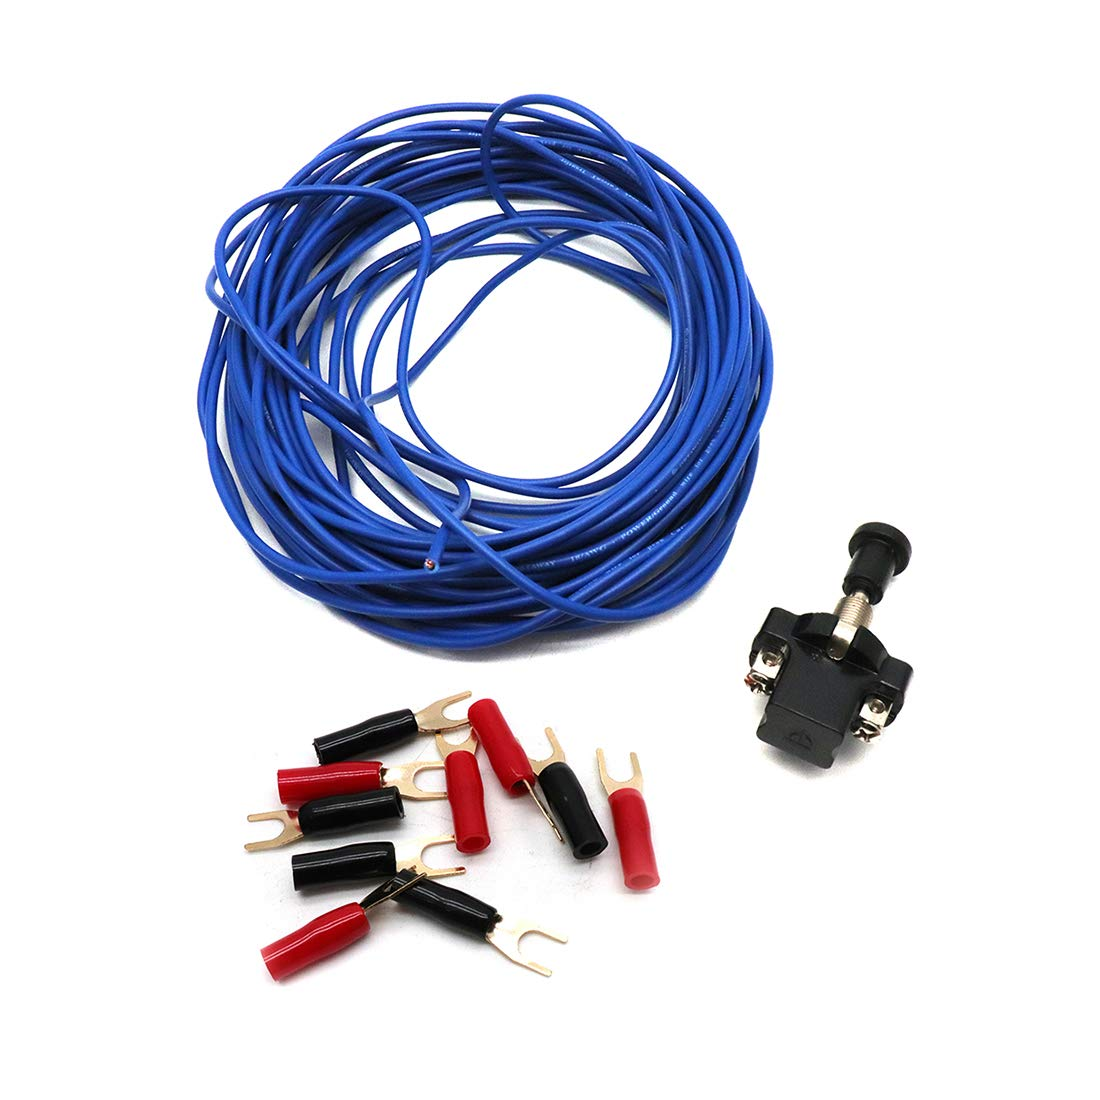 Sydien 18 Gauge 10M/33 Ft Car Audio Home Remote Wire with Connection Terminals&Push-Pull Switch for Car Audio Speaker Amplifier Remote Trailer Wiring